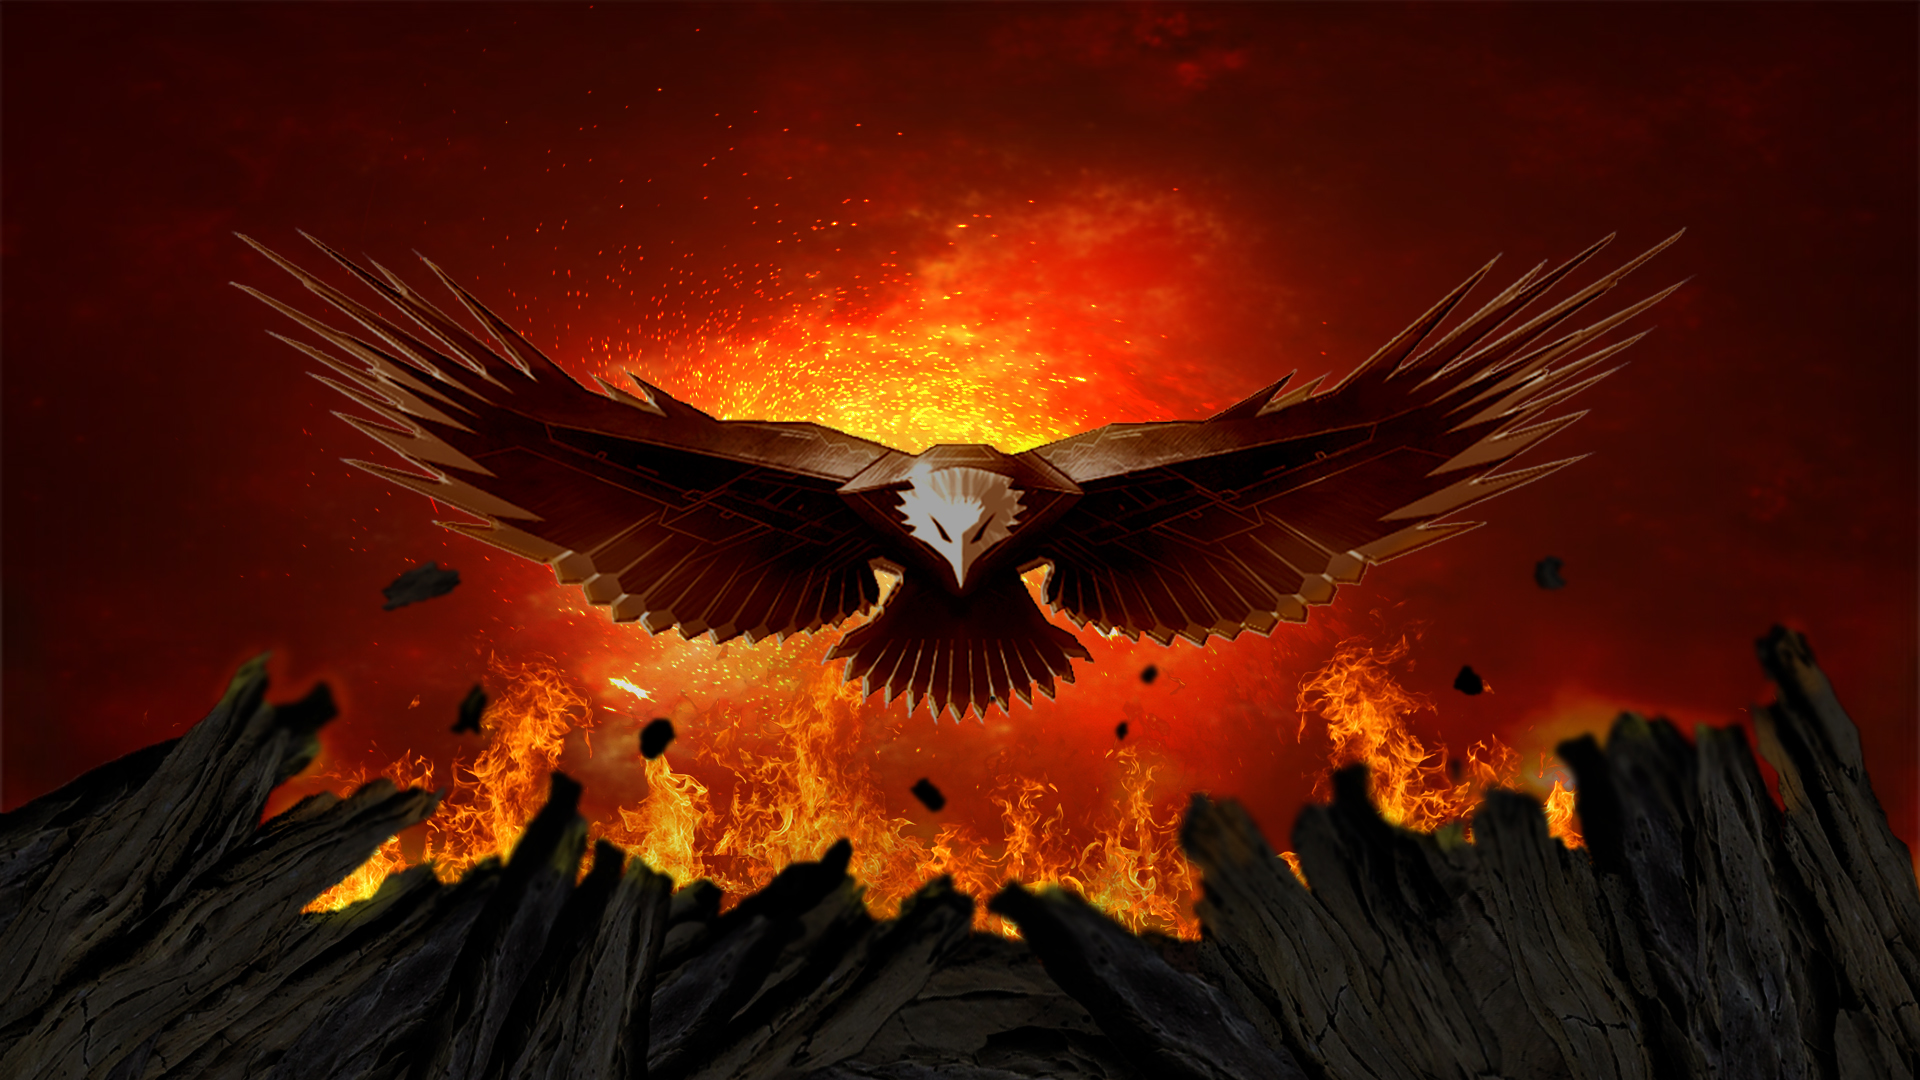 Fire Eagle Wallpaper